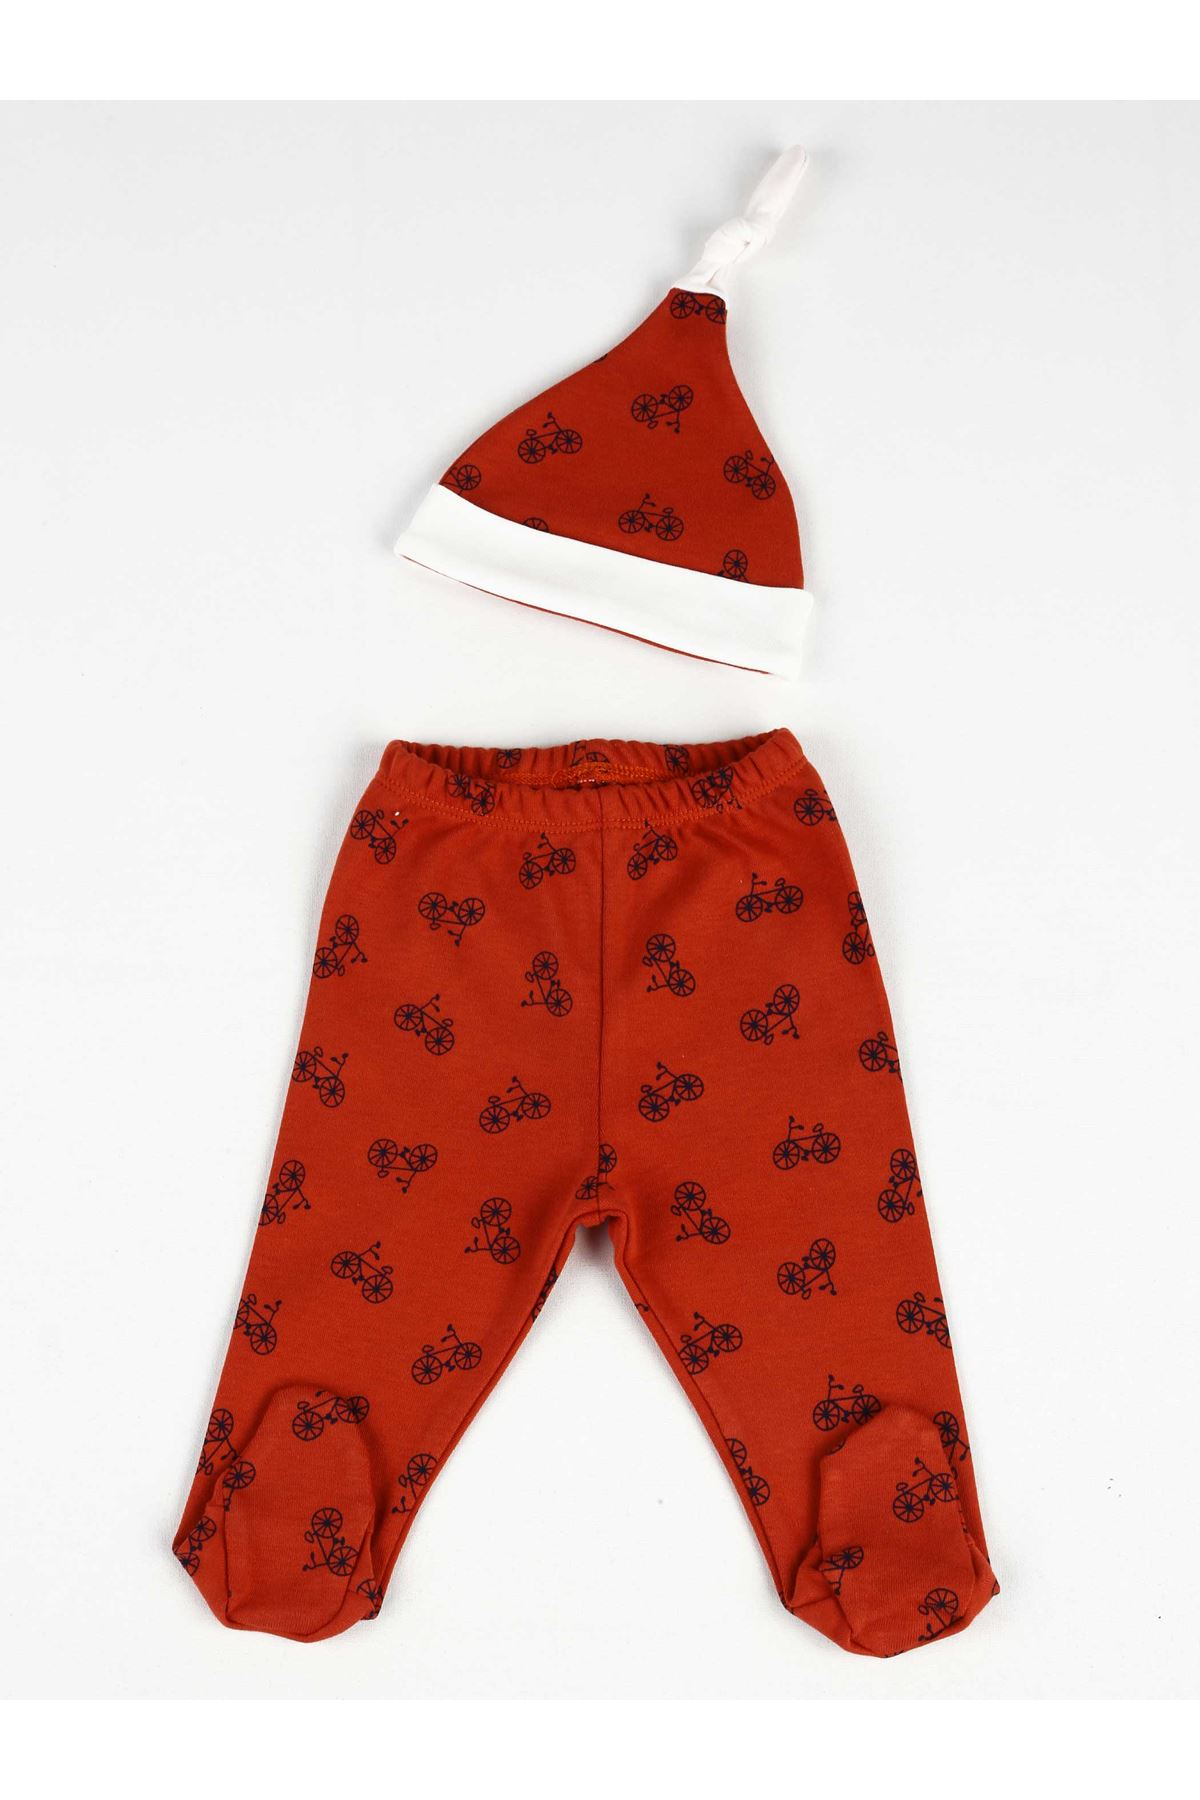 Red Patterned Baby Boy Hat and Footed Bottom